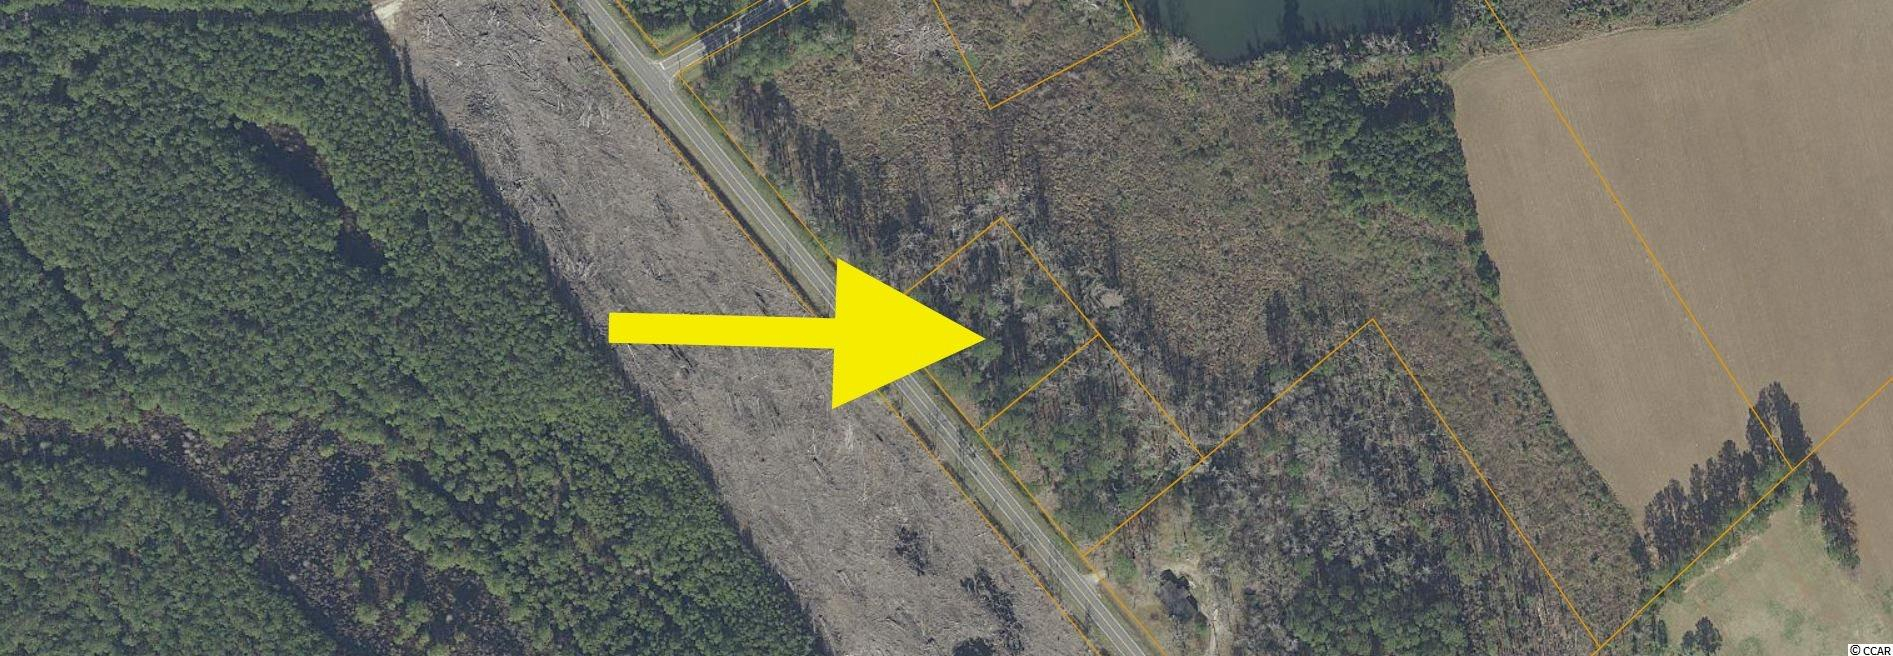 Nearly 1 acre lot on Pee Dee Hwy just minutes from downtown Conway. Great location for a home or just a getaway.